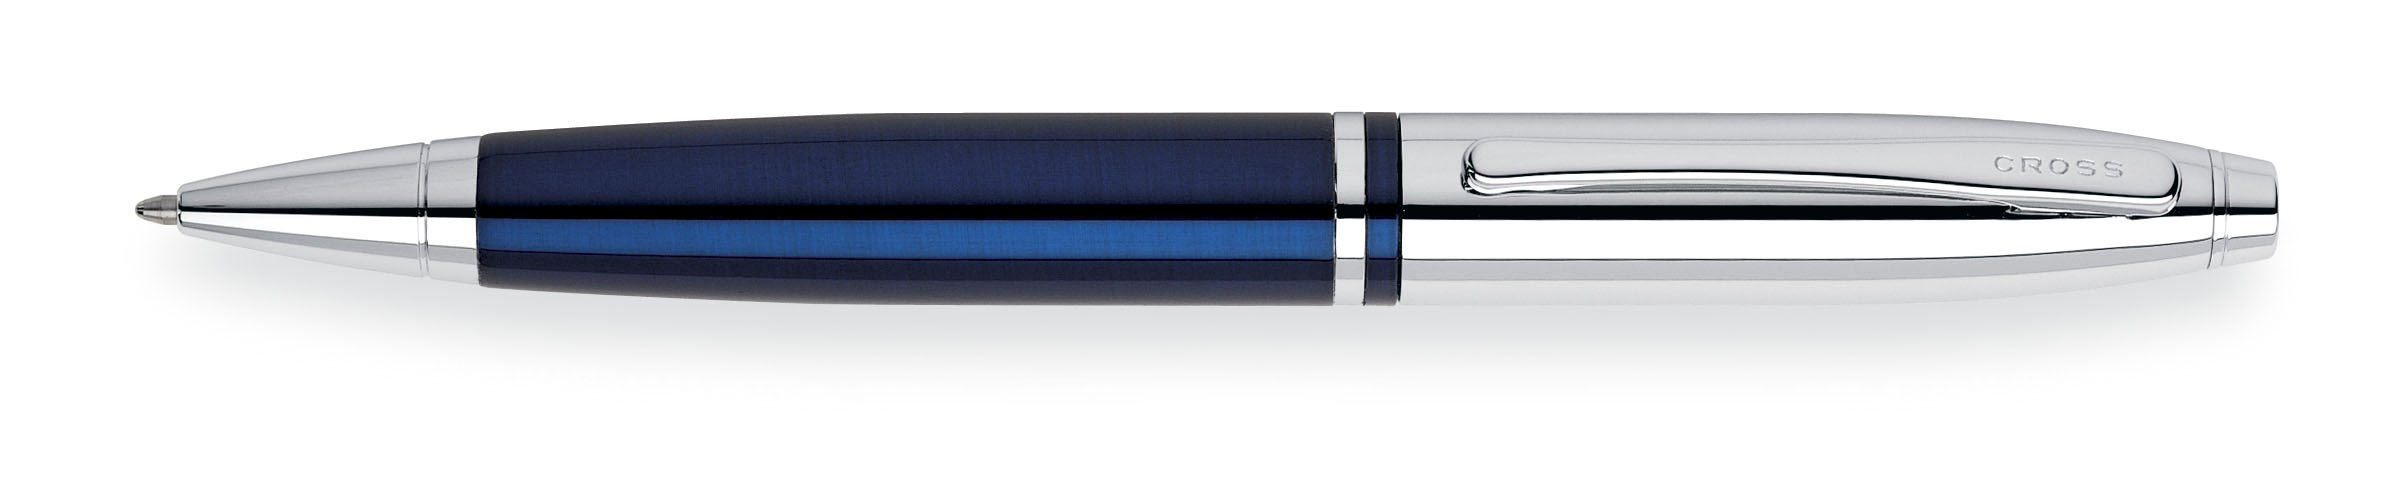 Cross Calais Chrome/Blue Lacquer Ballpoint Pen by Cross (Image #1)